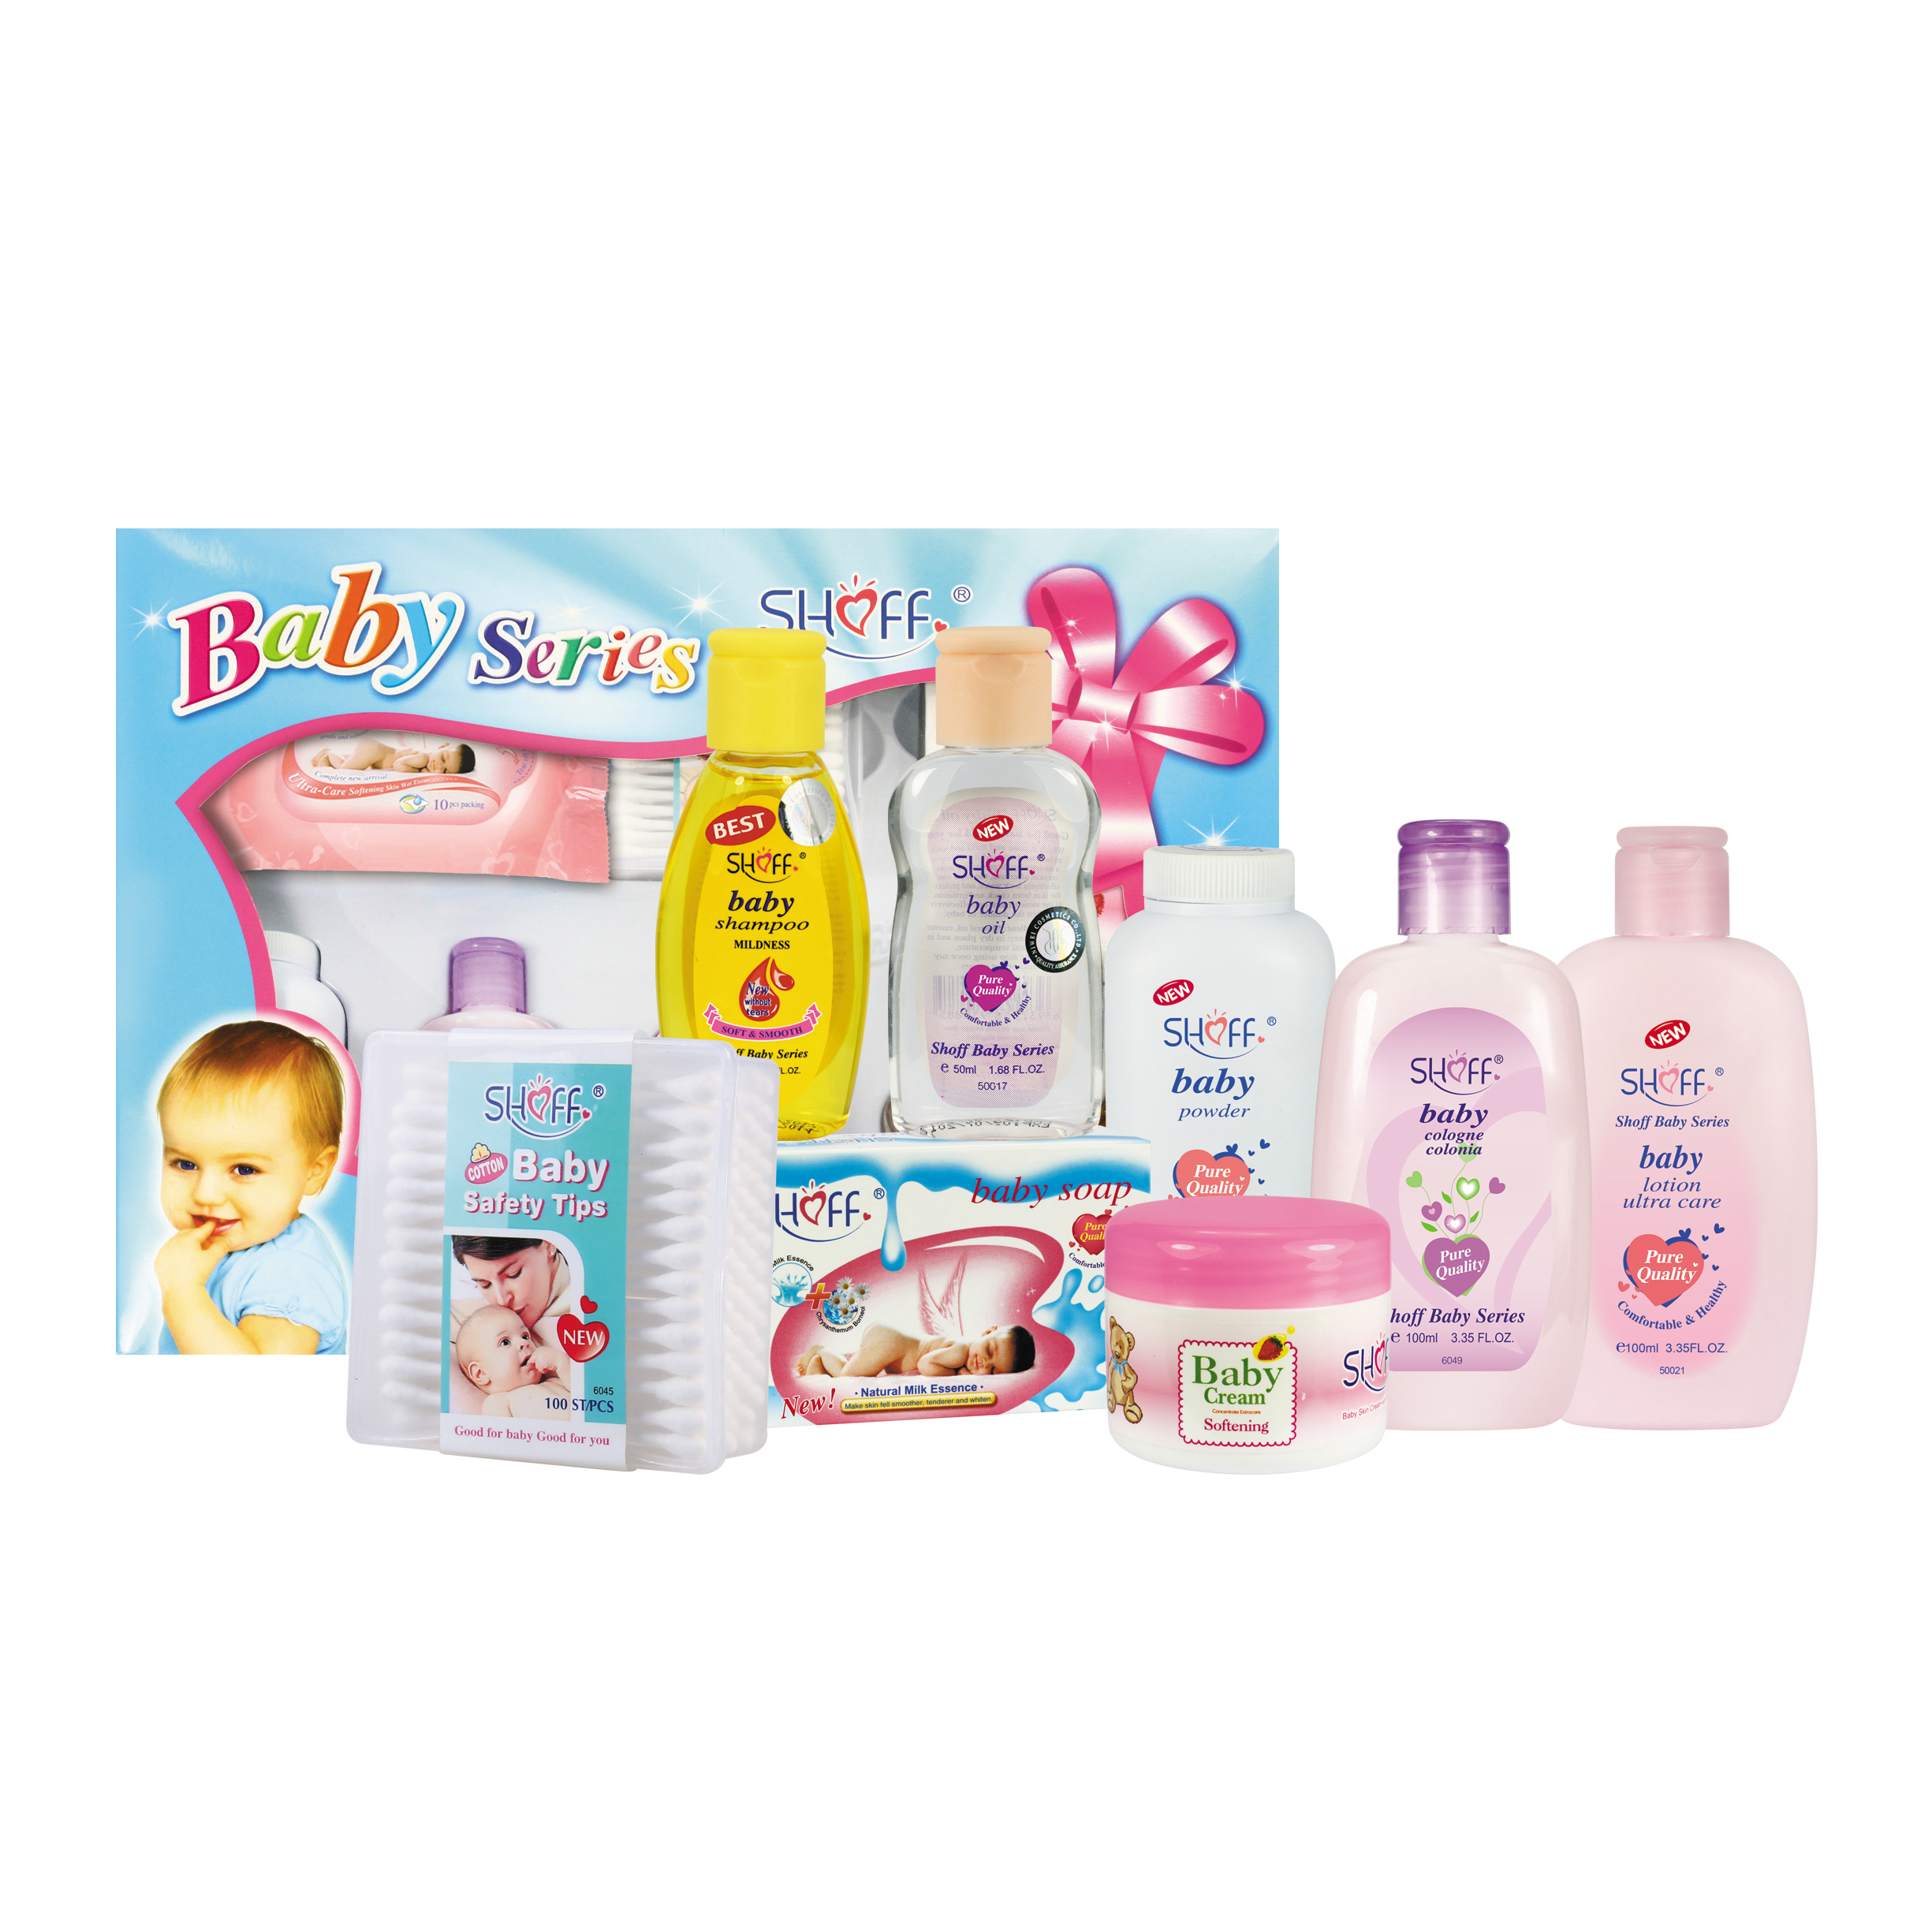 Gift Pack For Baby Daily Bath Time Solutions Gift Set To Nourish Skin For Baby 8 Items View Baby Bath Gift Set Shoff Product Details From Yozzi Co Ltd On Alibaba Com